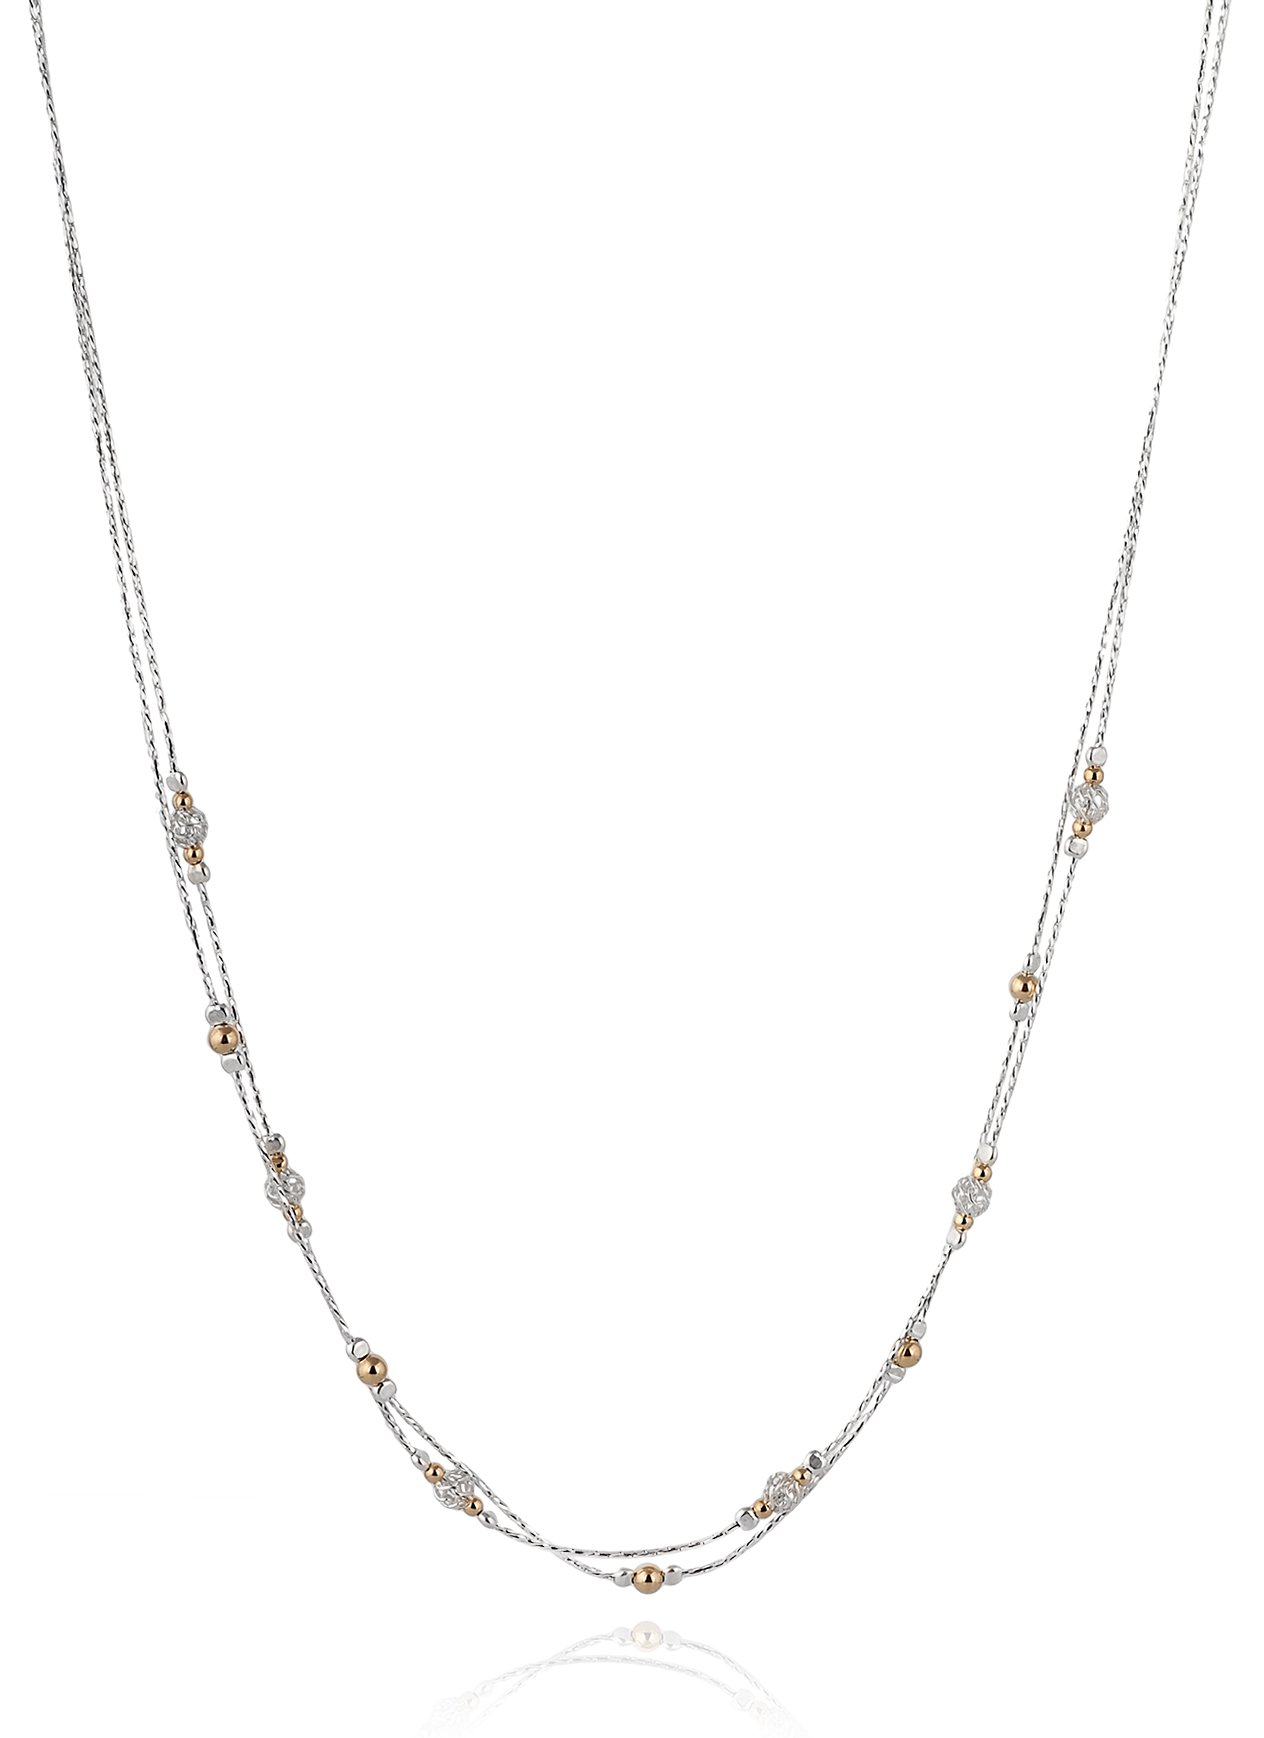 Double Strand Sterling Silver Necklace with 14k Gold Filled & Wire Net Bead Stations, 18'' + 4'' Extender